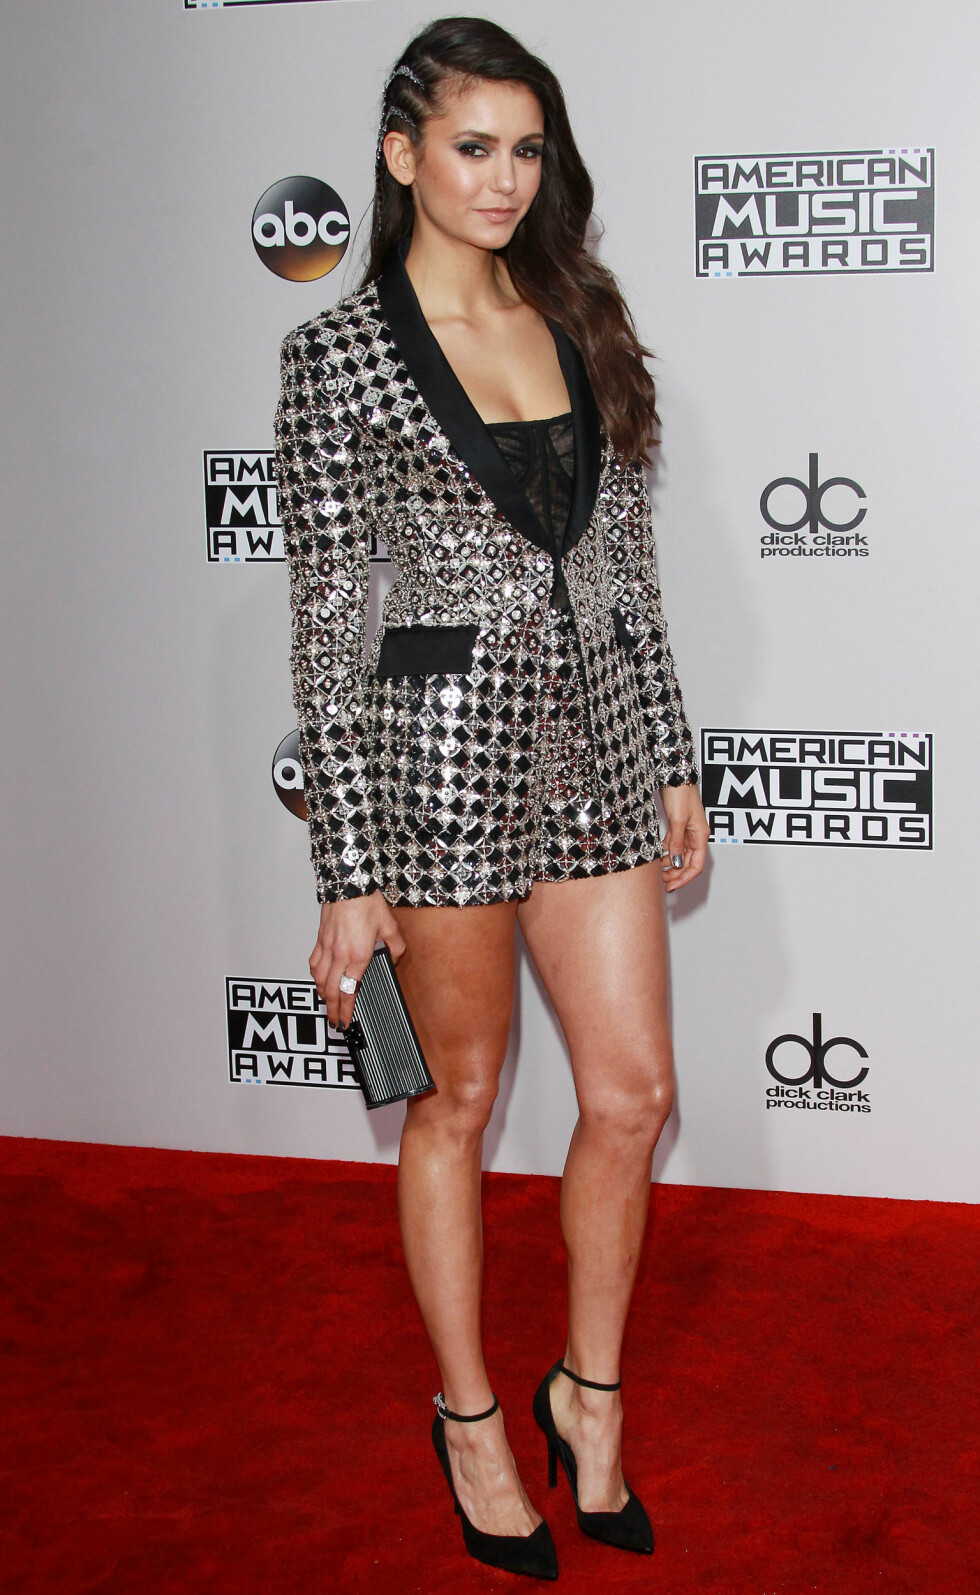 AMERICAN MUSIC AWARDS: Nina Dobrev Foto: Broadimage